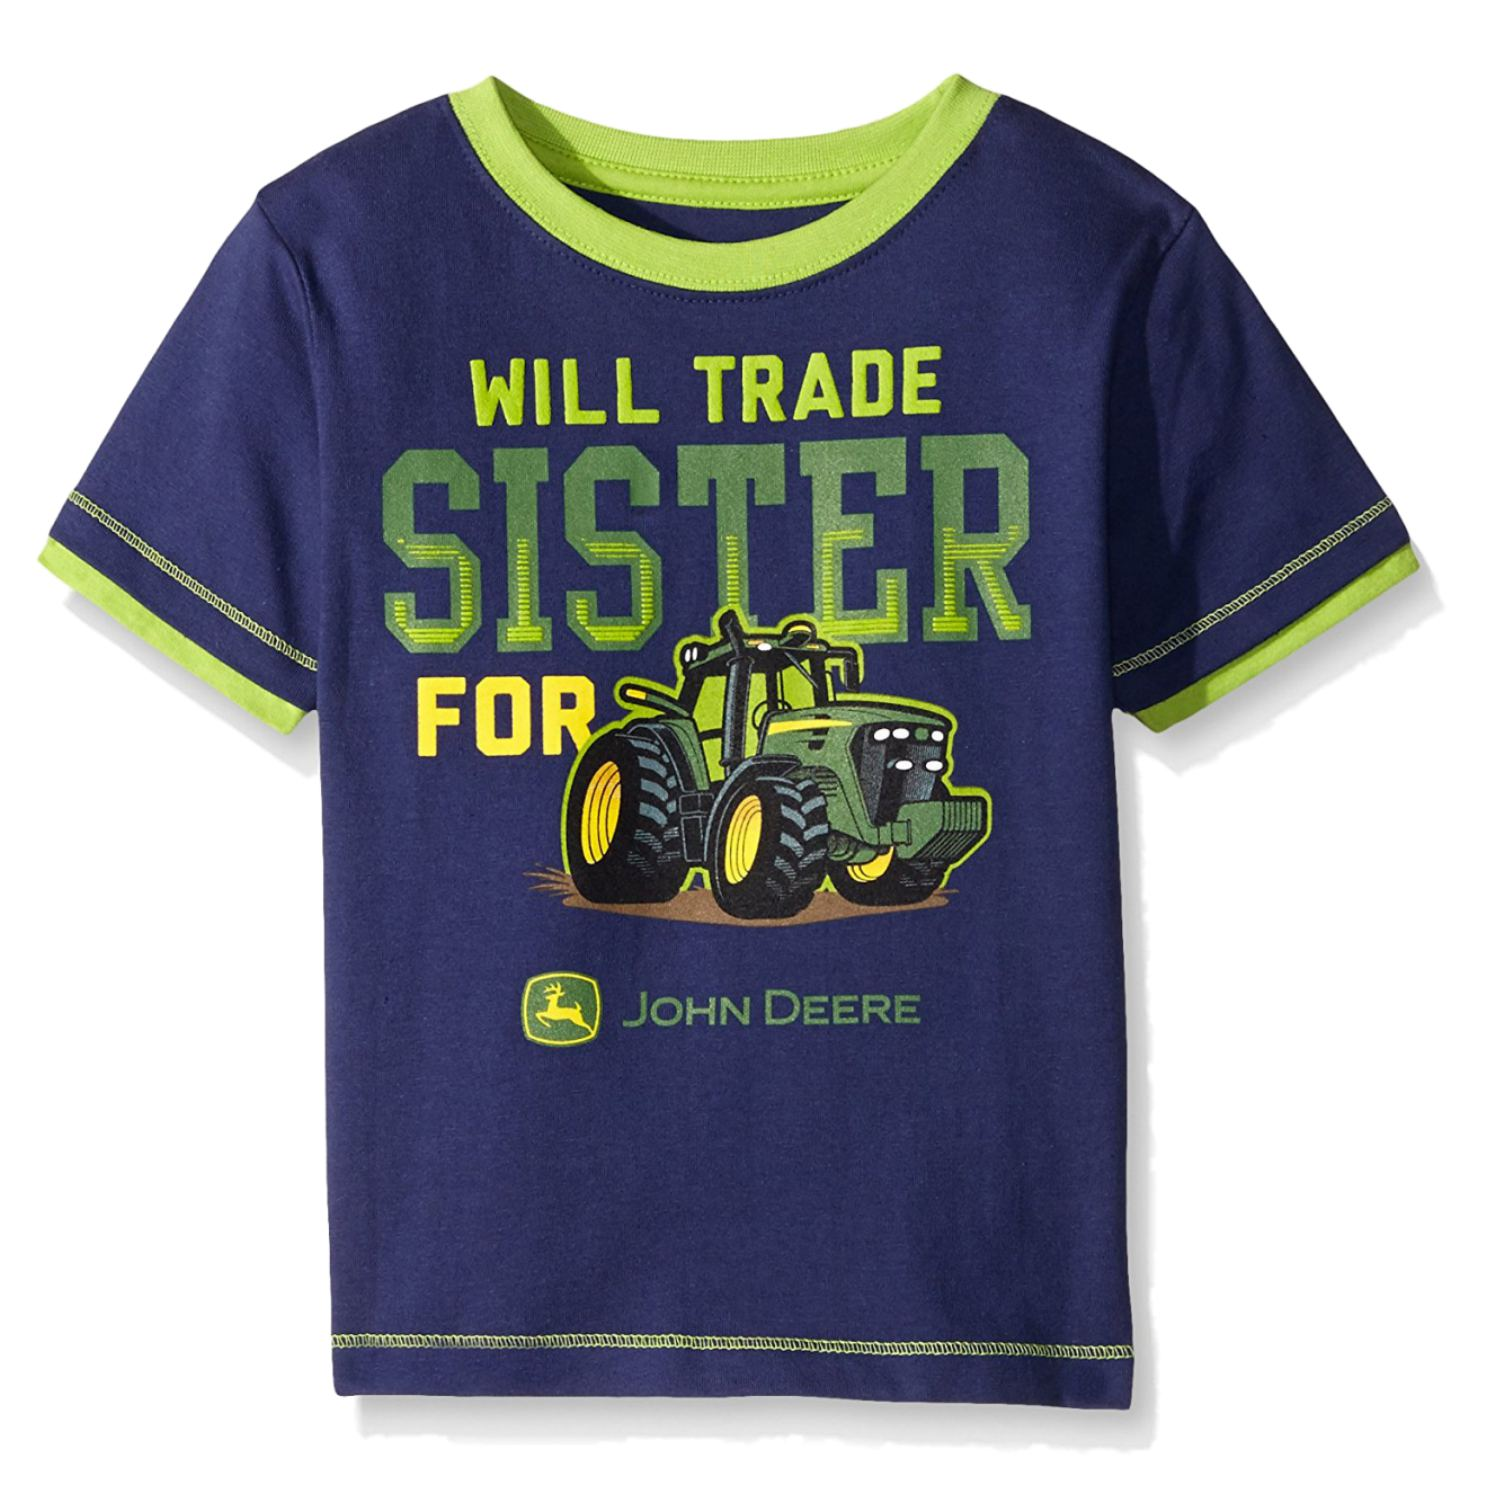 John Deere Toddler Boys Will Trade Sister For Tractor T Shirt 2t